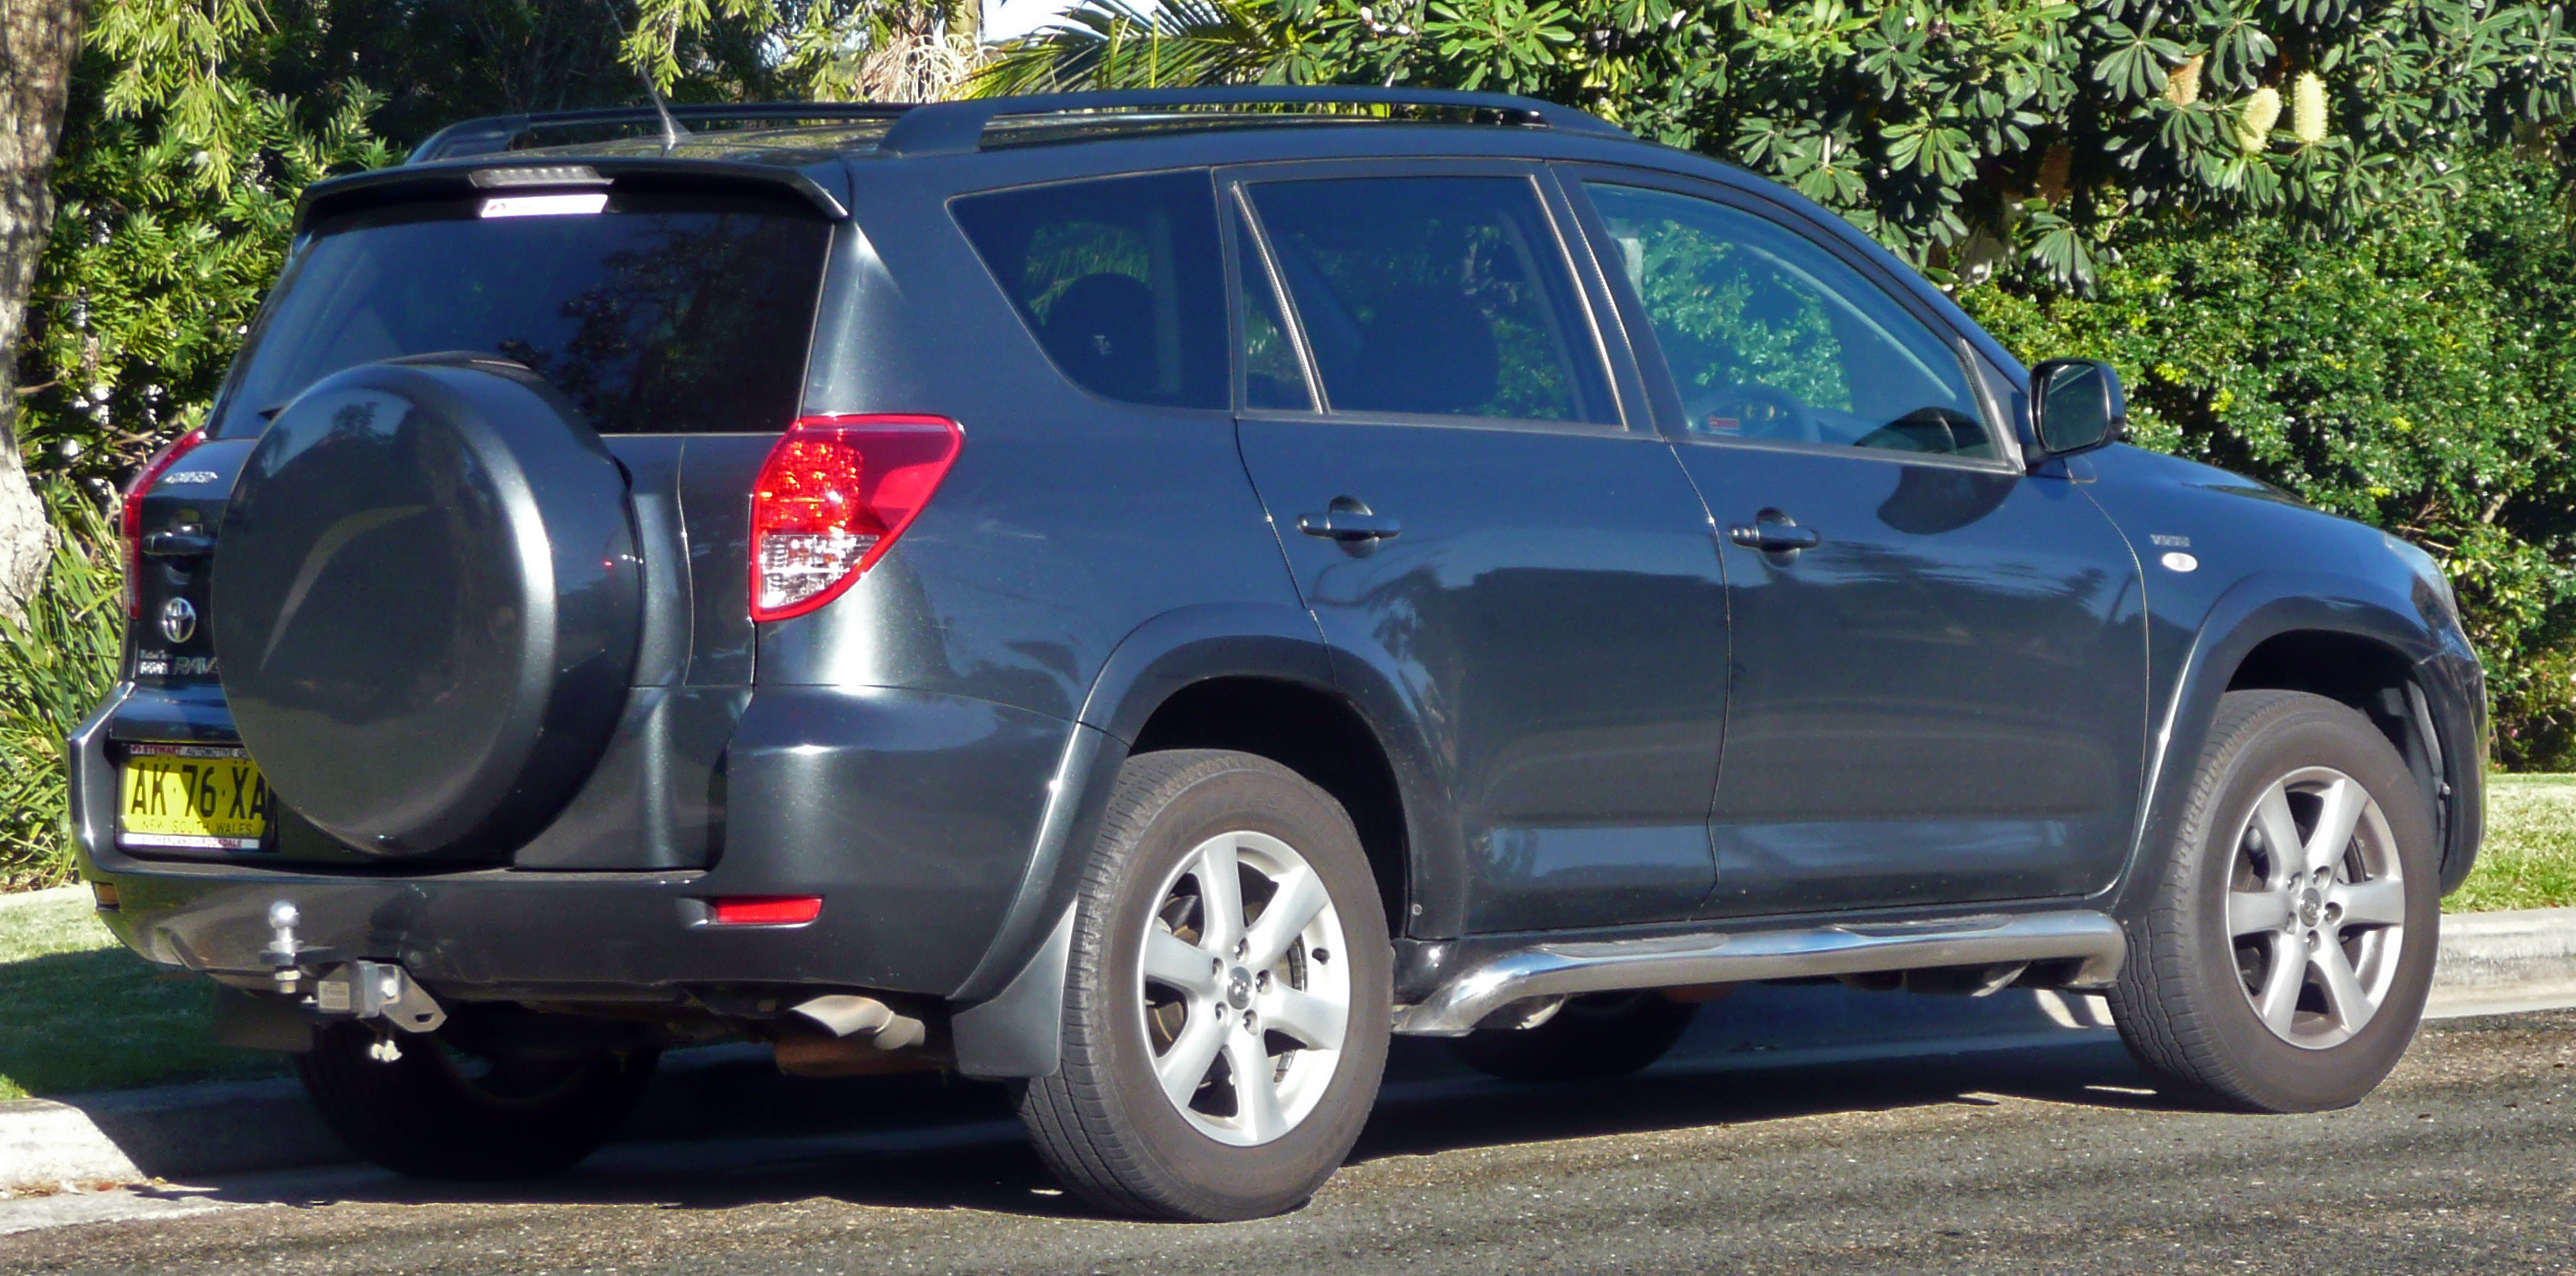 2006 toyota rav4 iii pictures information and specs auto. Black Bedroom Furniture Sets. Home Design Ideas